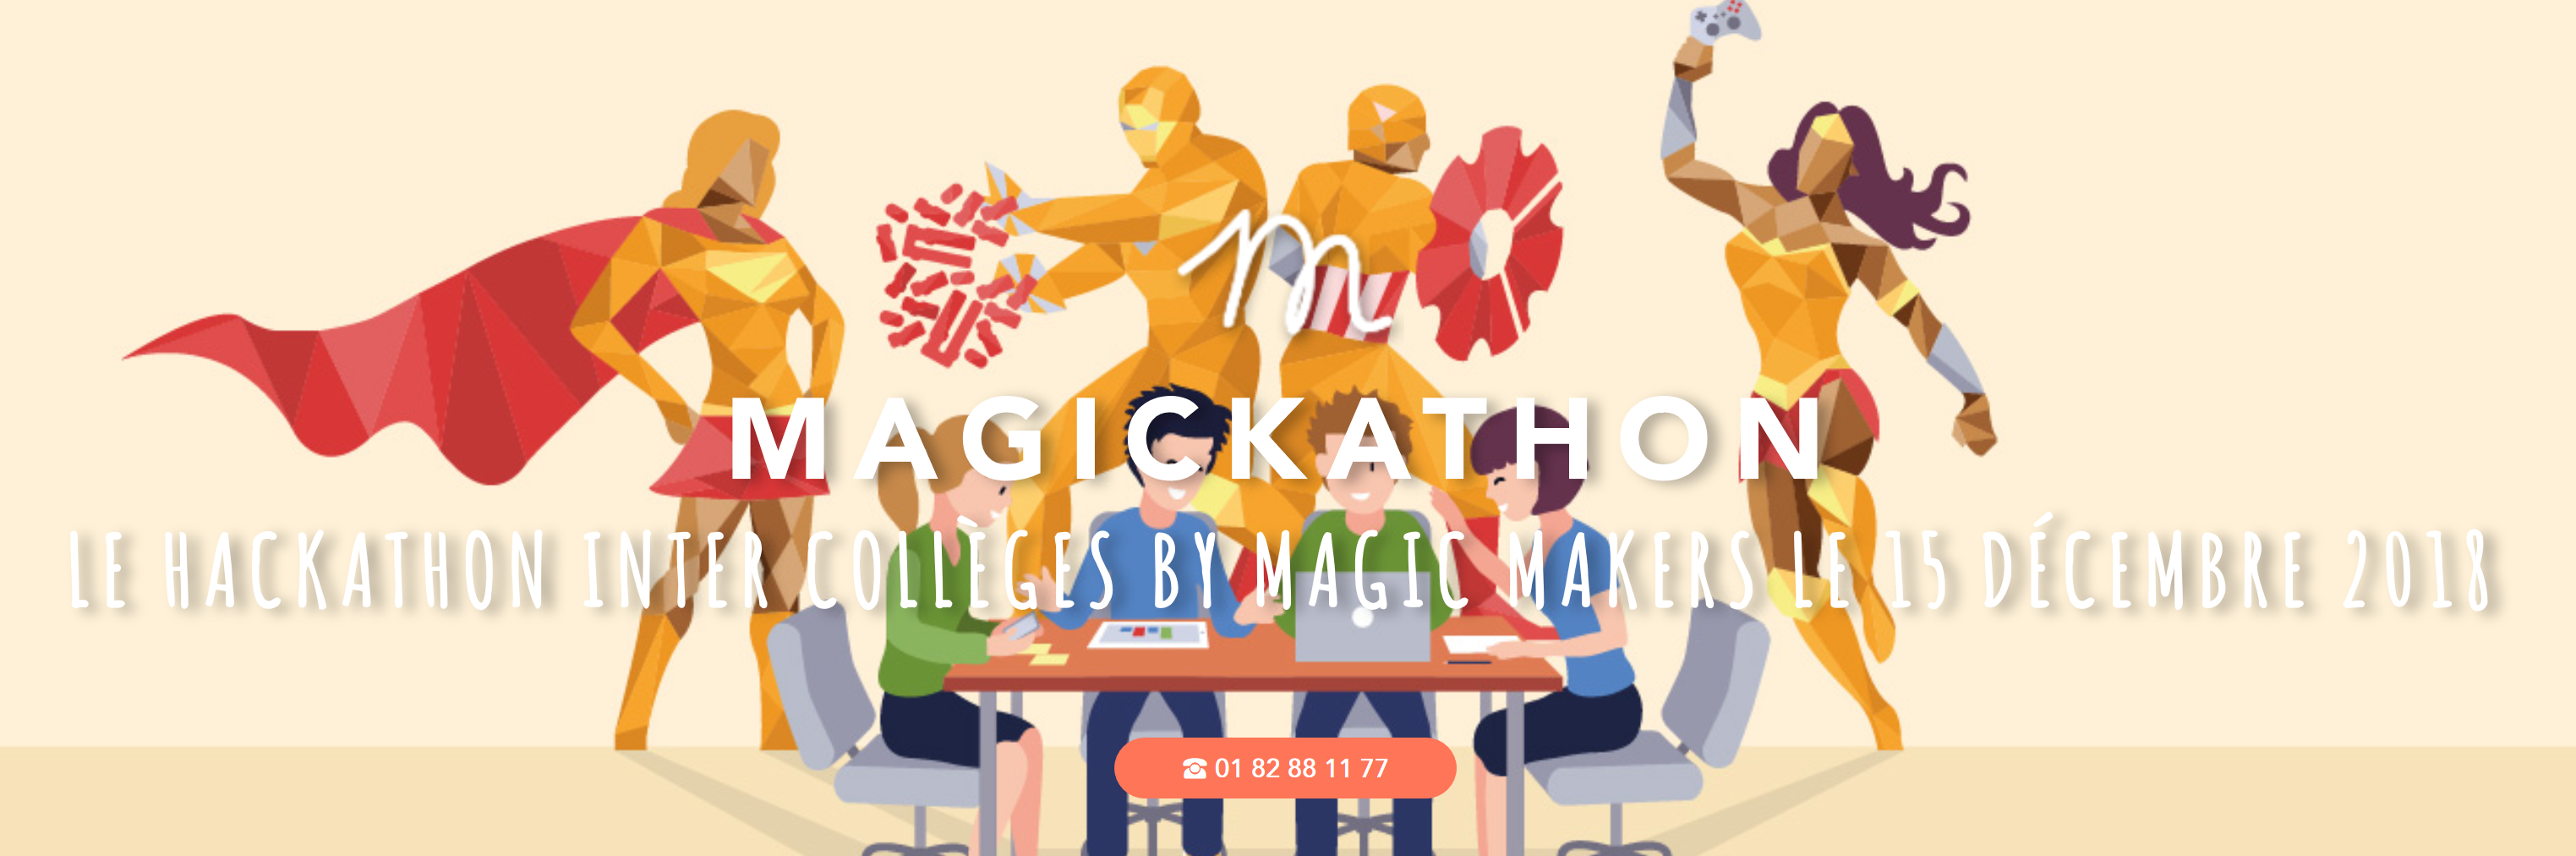 Hackathon Magic Makers Paris 2018